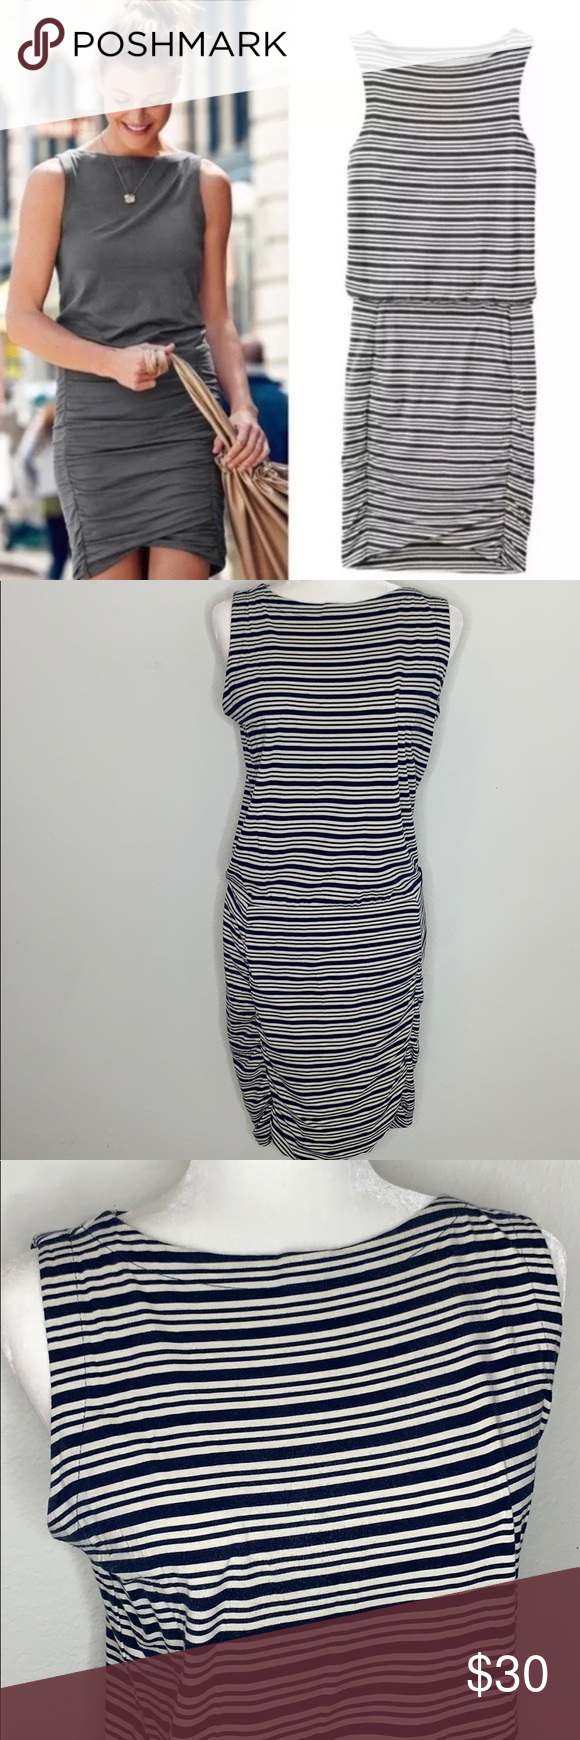 Athleta Tulip Striped Dress Excellent Used Condition Athleta Tulip Dress In Navy And White Striped Pattern Lots Of S Striped Dress Tulip Dress Clothes Design [ 1740 x 580 Pixel ]